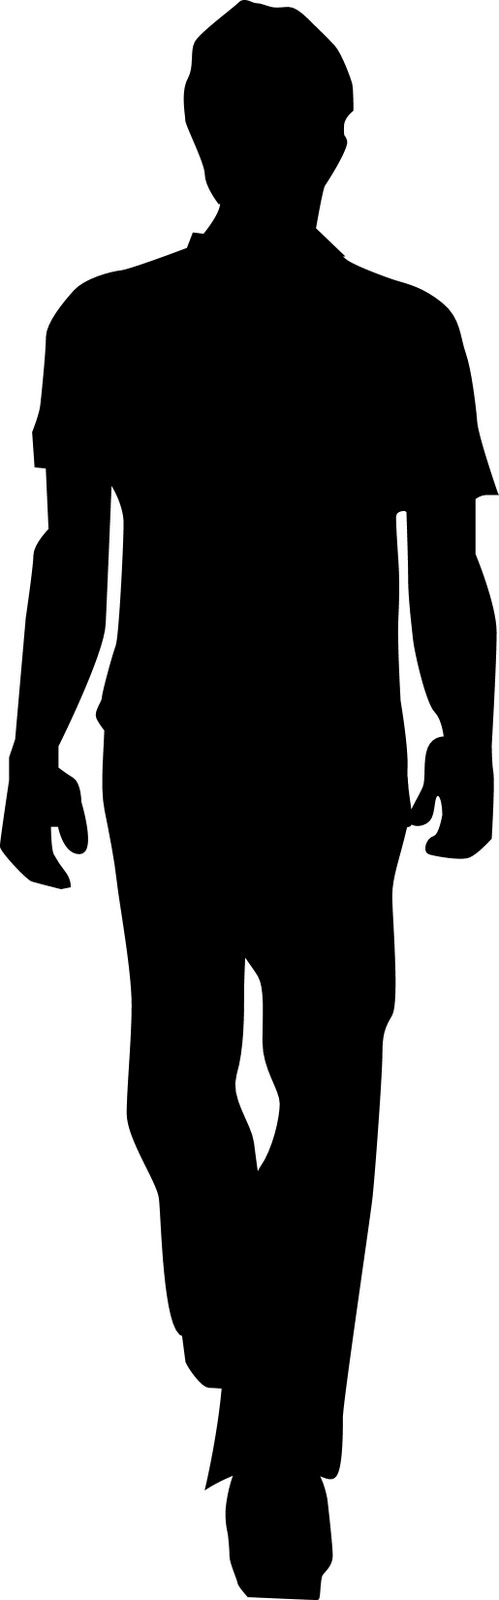 499x1600 Silhouette People